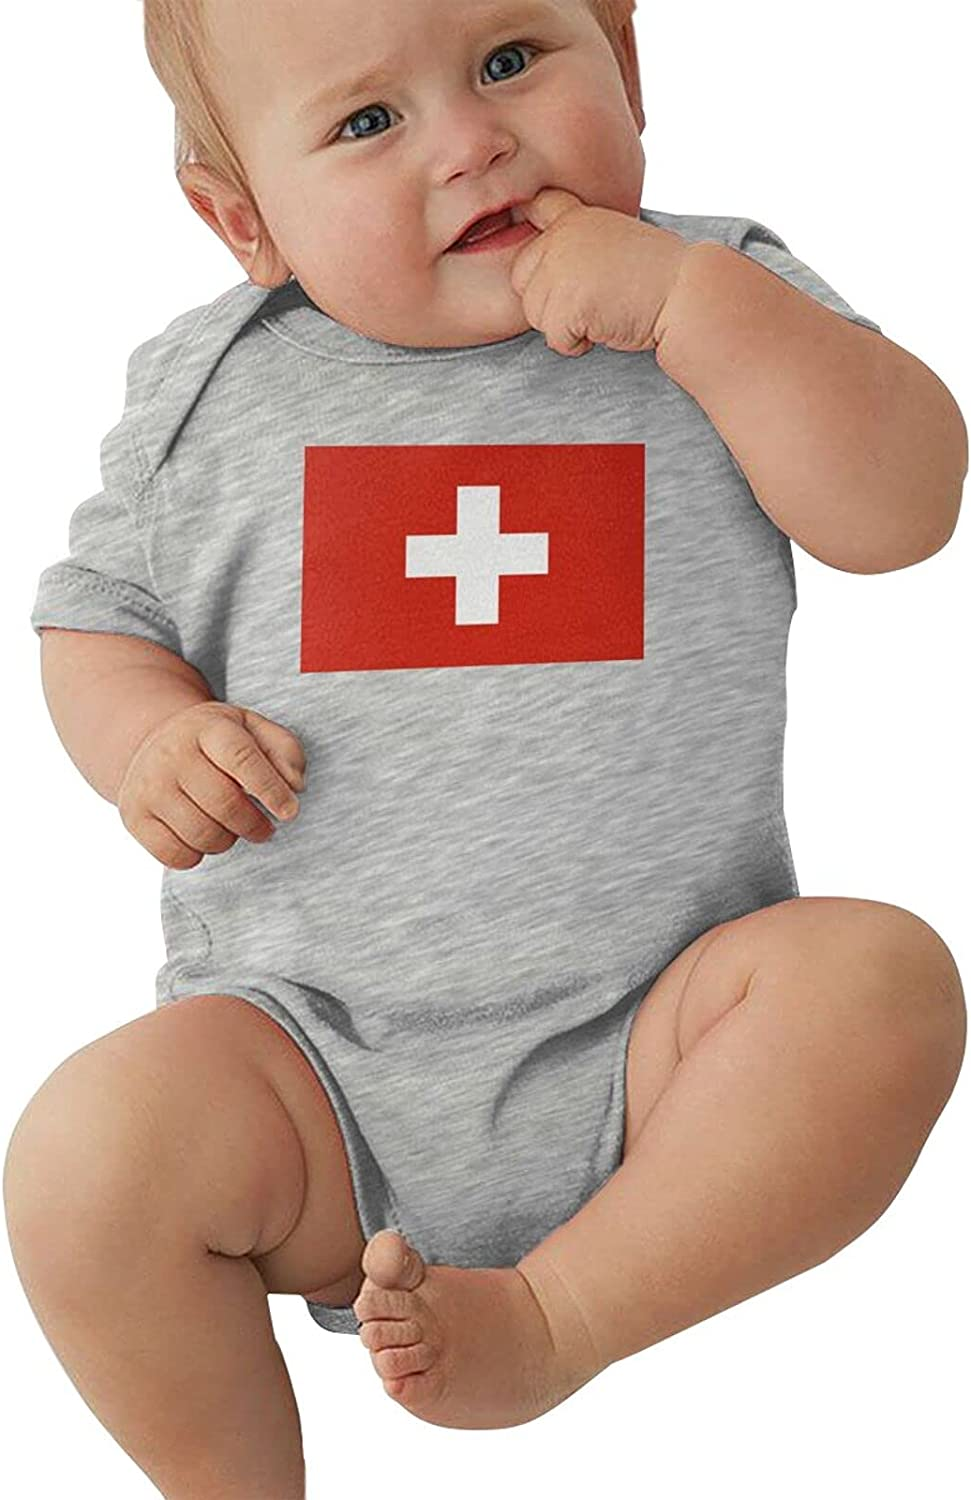 Swiss Flag Infant Atlanta Mall Jumpsuit Keeps Albuquerque Mall Warm Baby Cycling Clothes Crawl